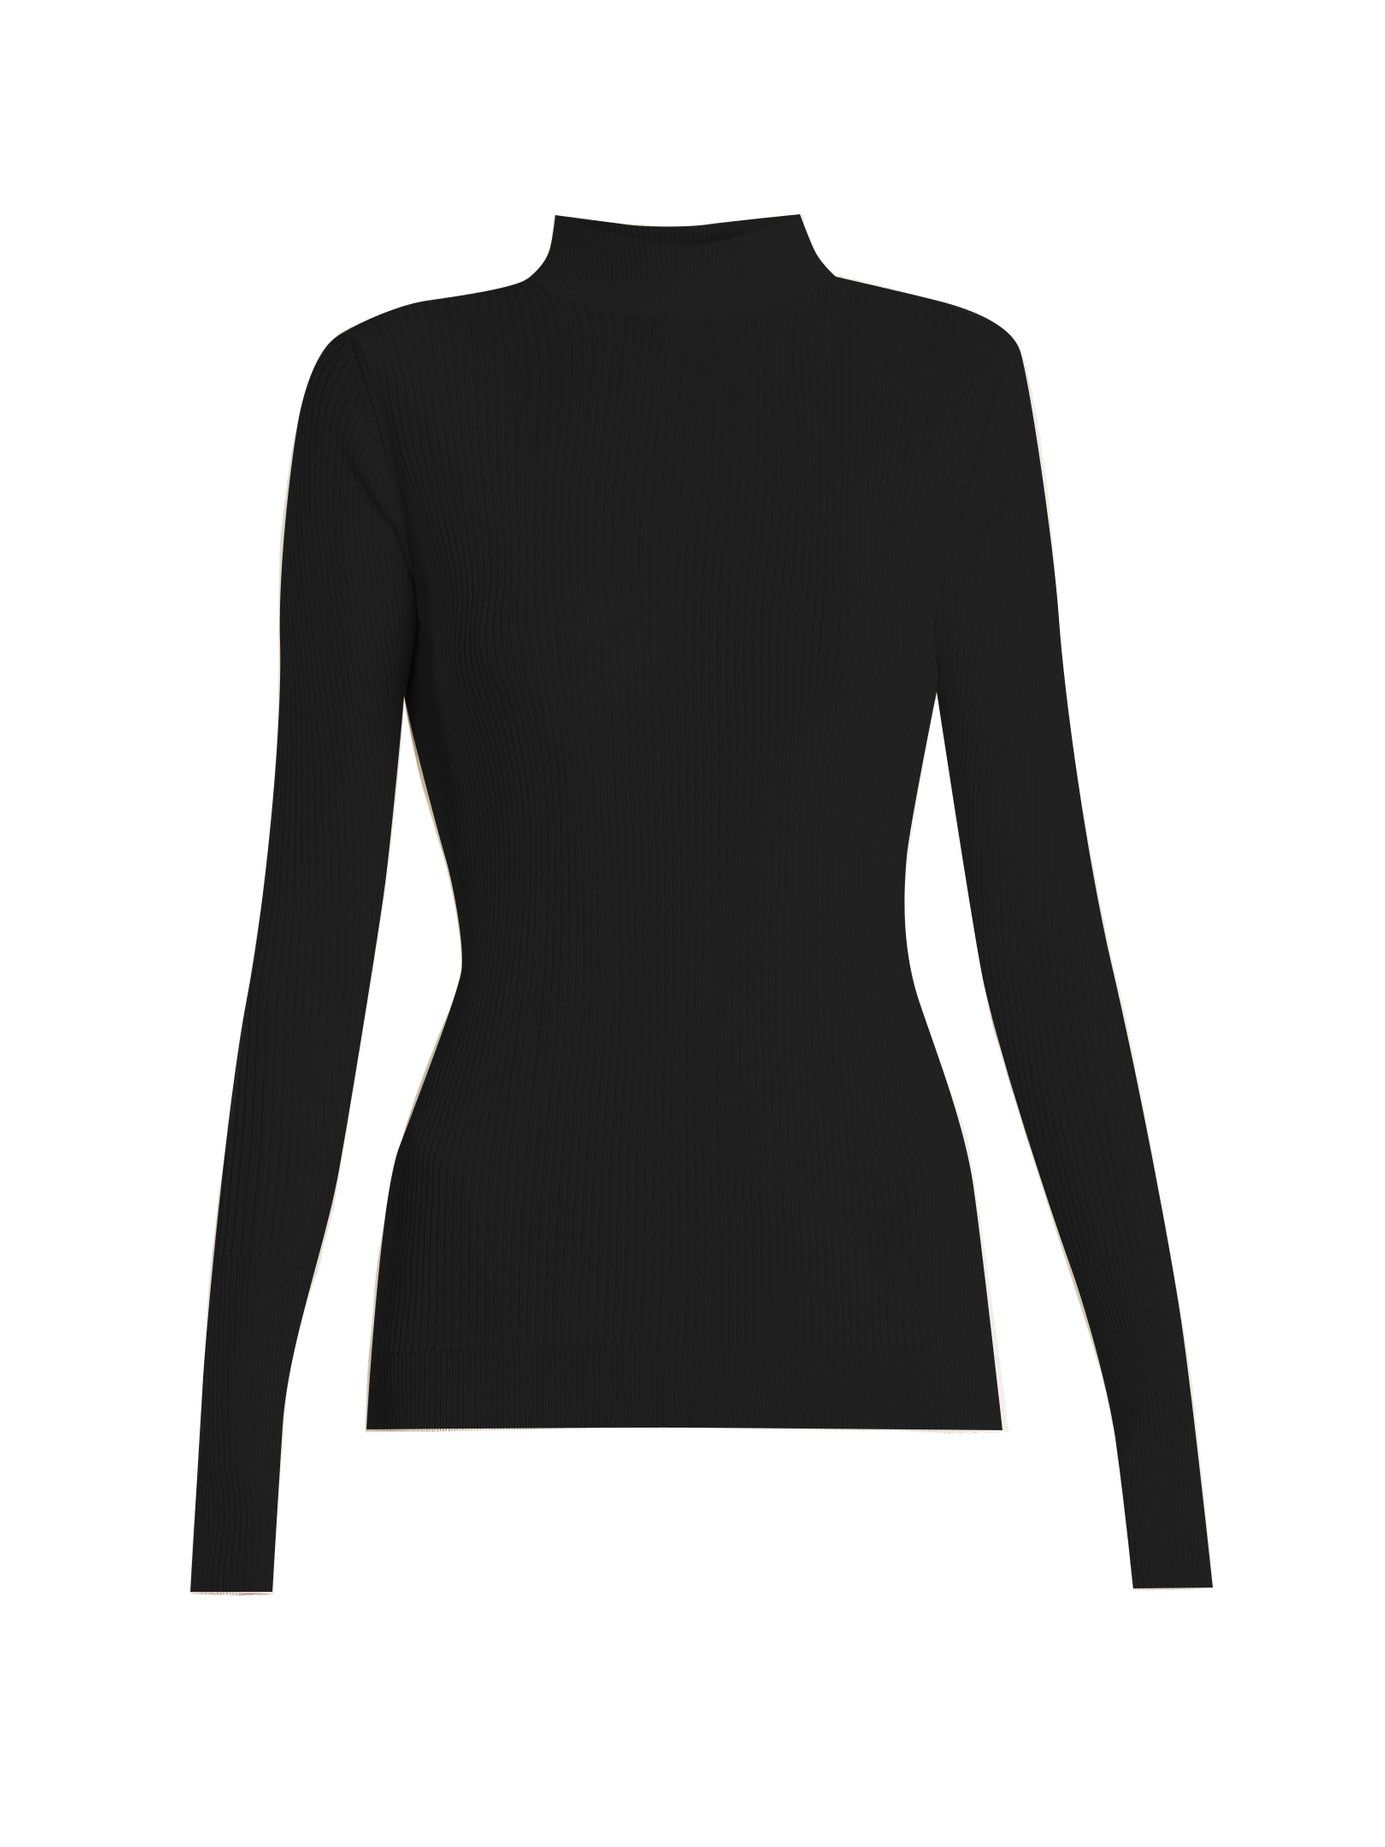 Roll-neck ribbed-knit sweater Simone Rocha Outlet Really Pay With Paypal Cheap Price Get To Buy Cheap Price Cheap Sale Huge Surprise umA0EitIV